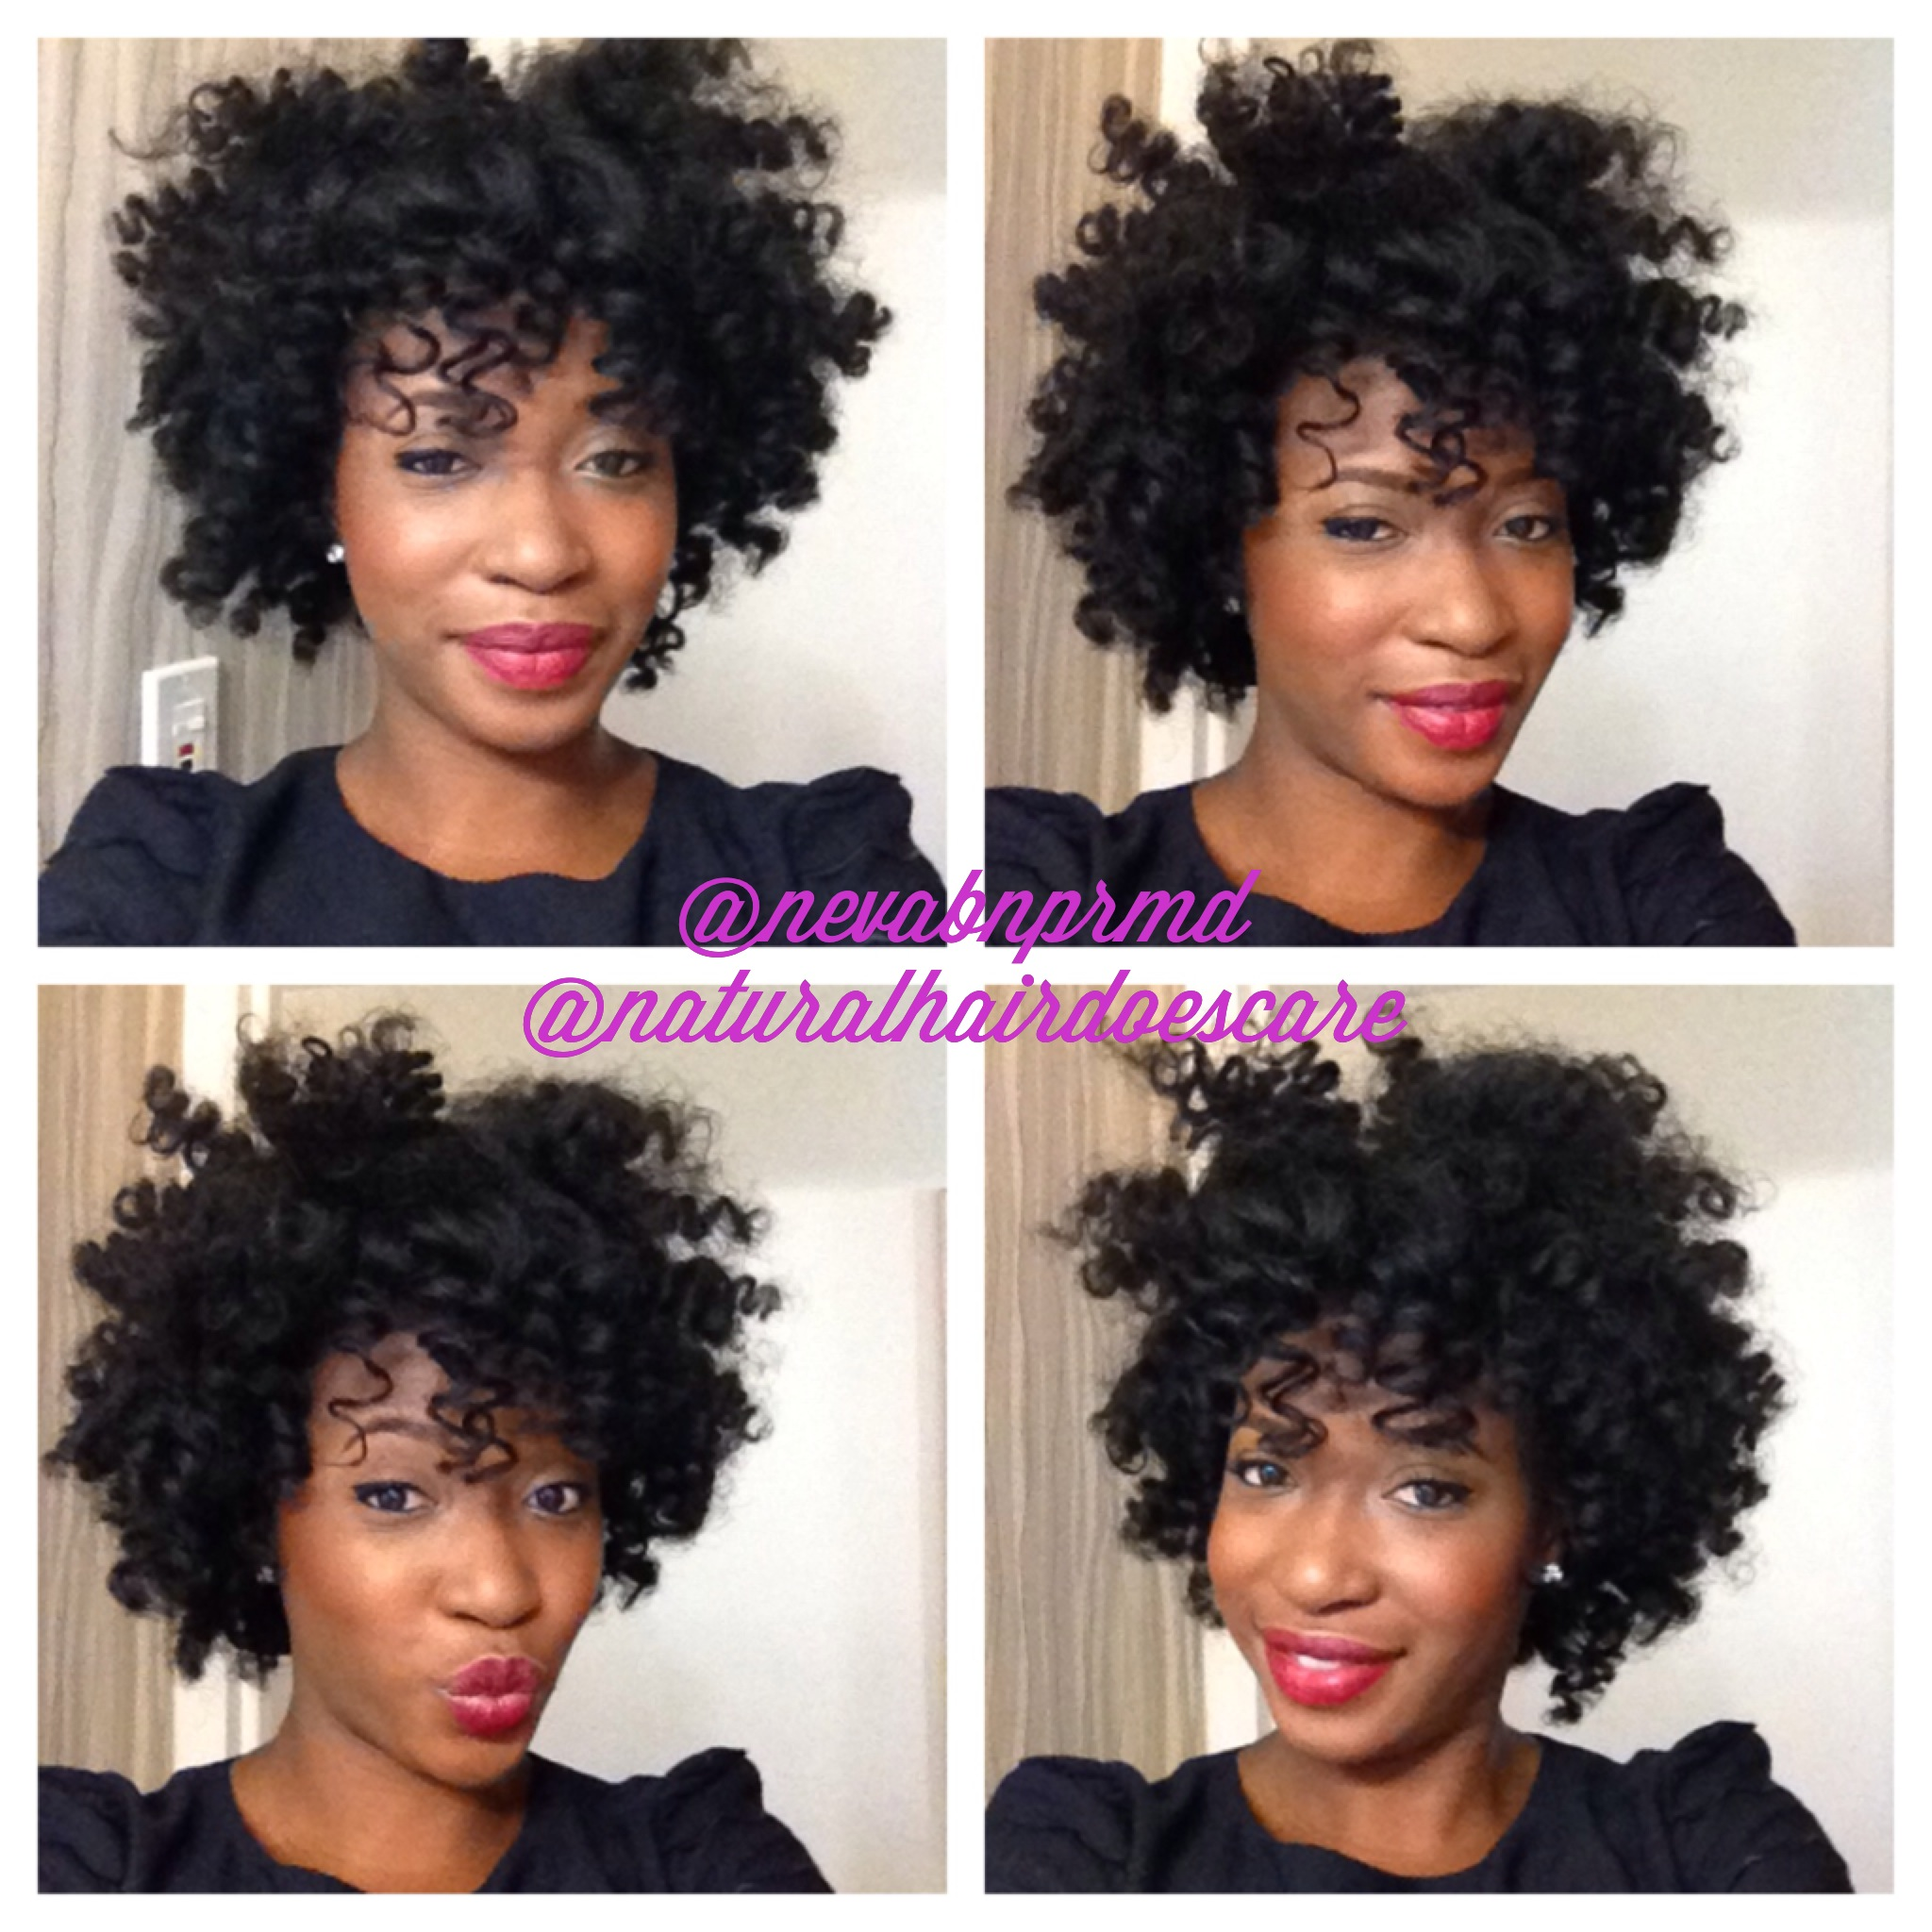 Curly Fro!